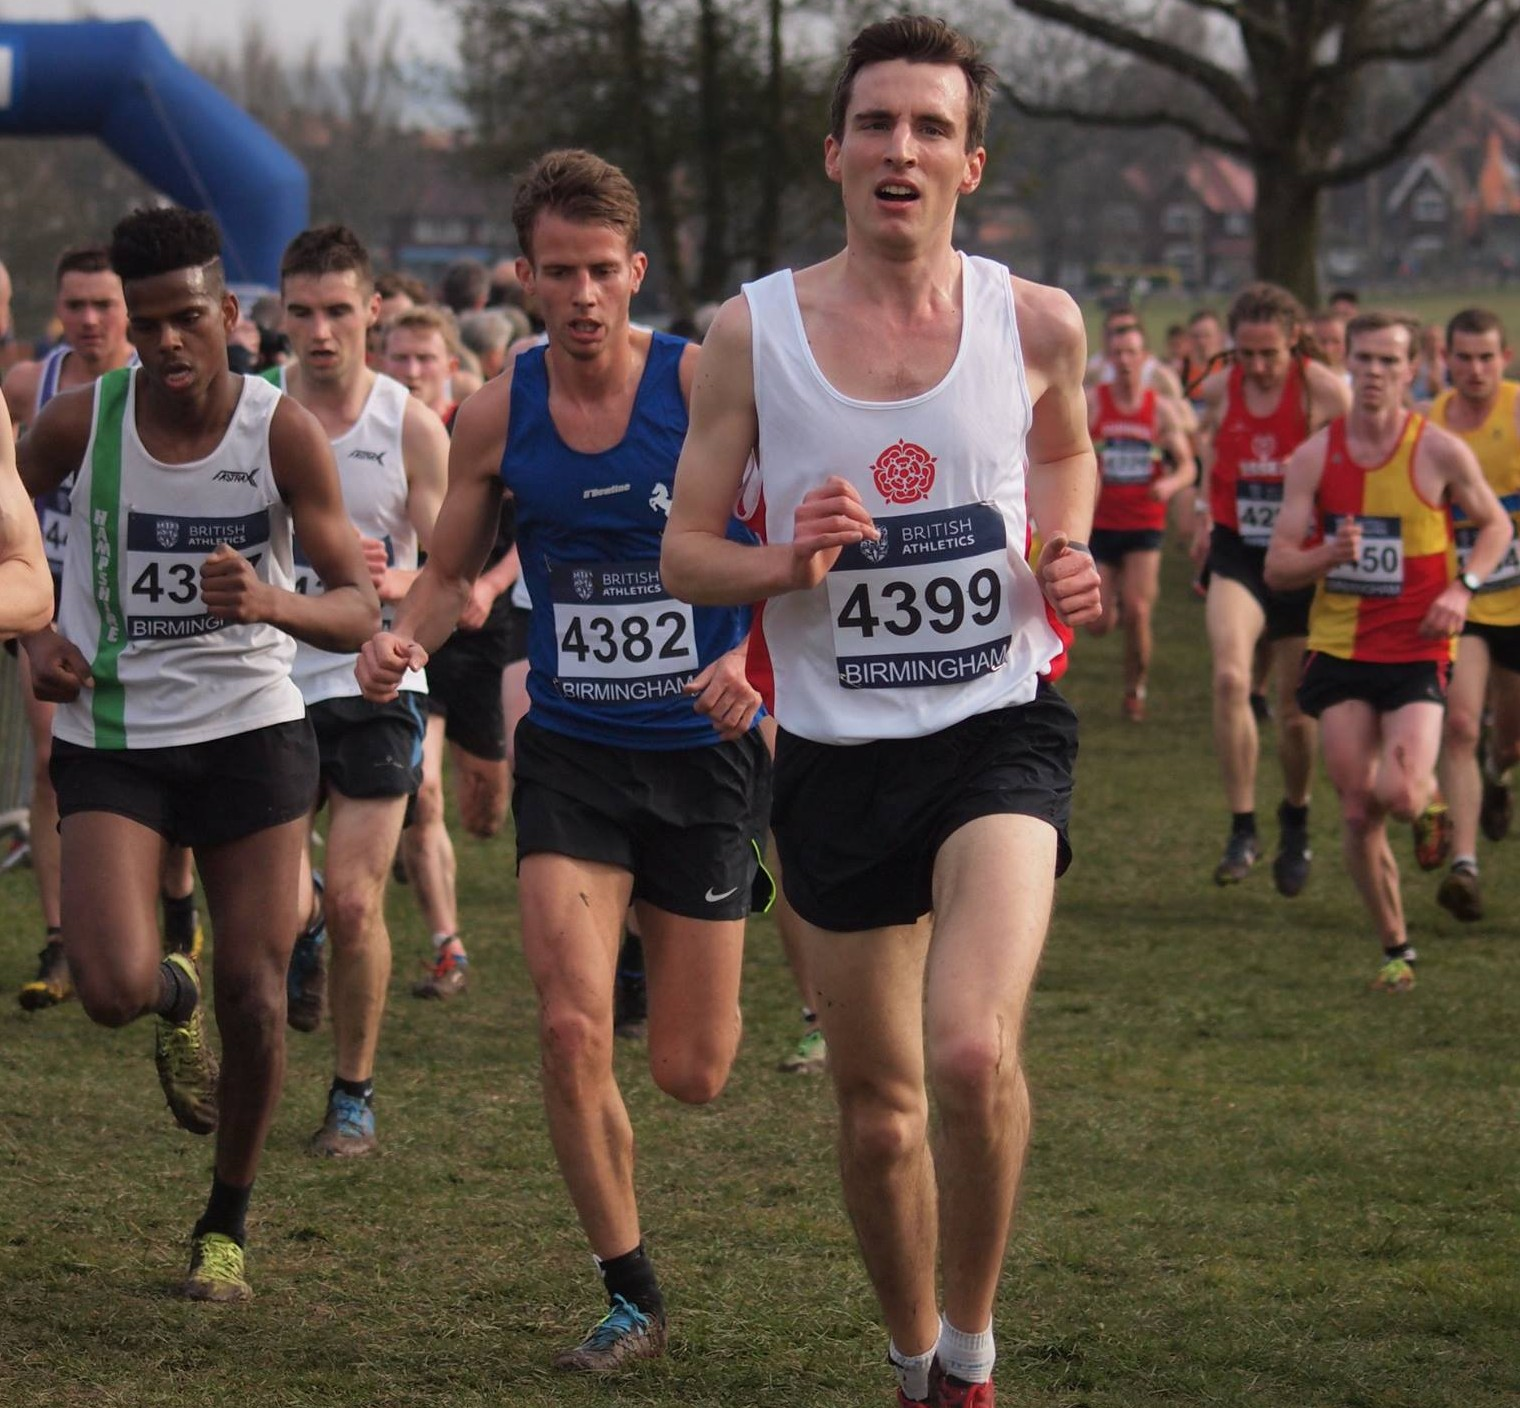 Blackburn Harriers athletes Running for Lancashire at Inter-Counties Championships